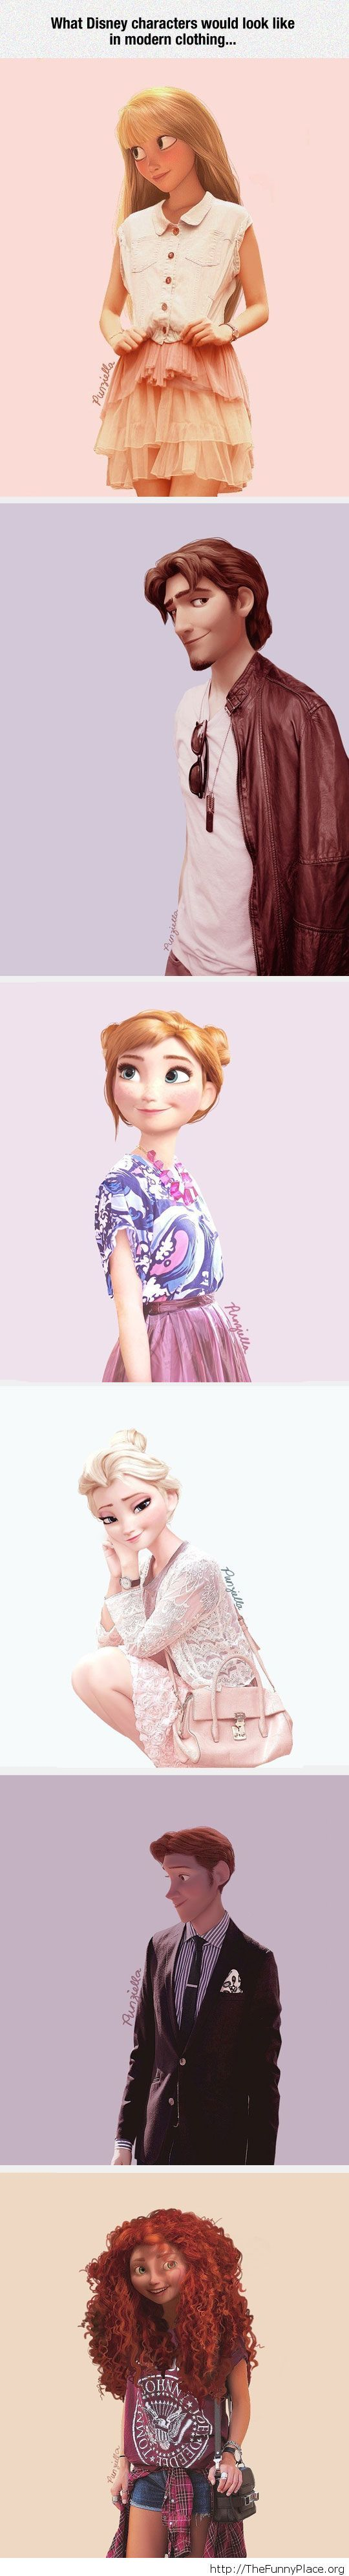 Disney characters in modern clothing Funny